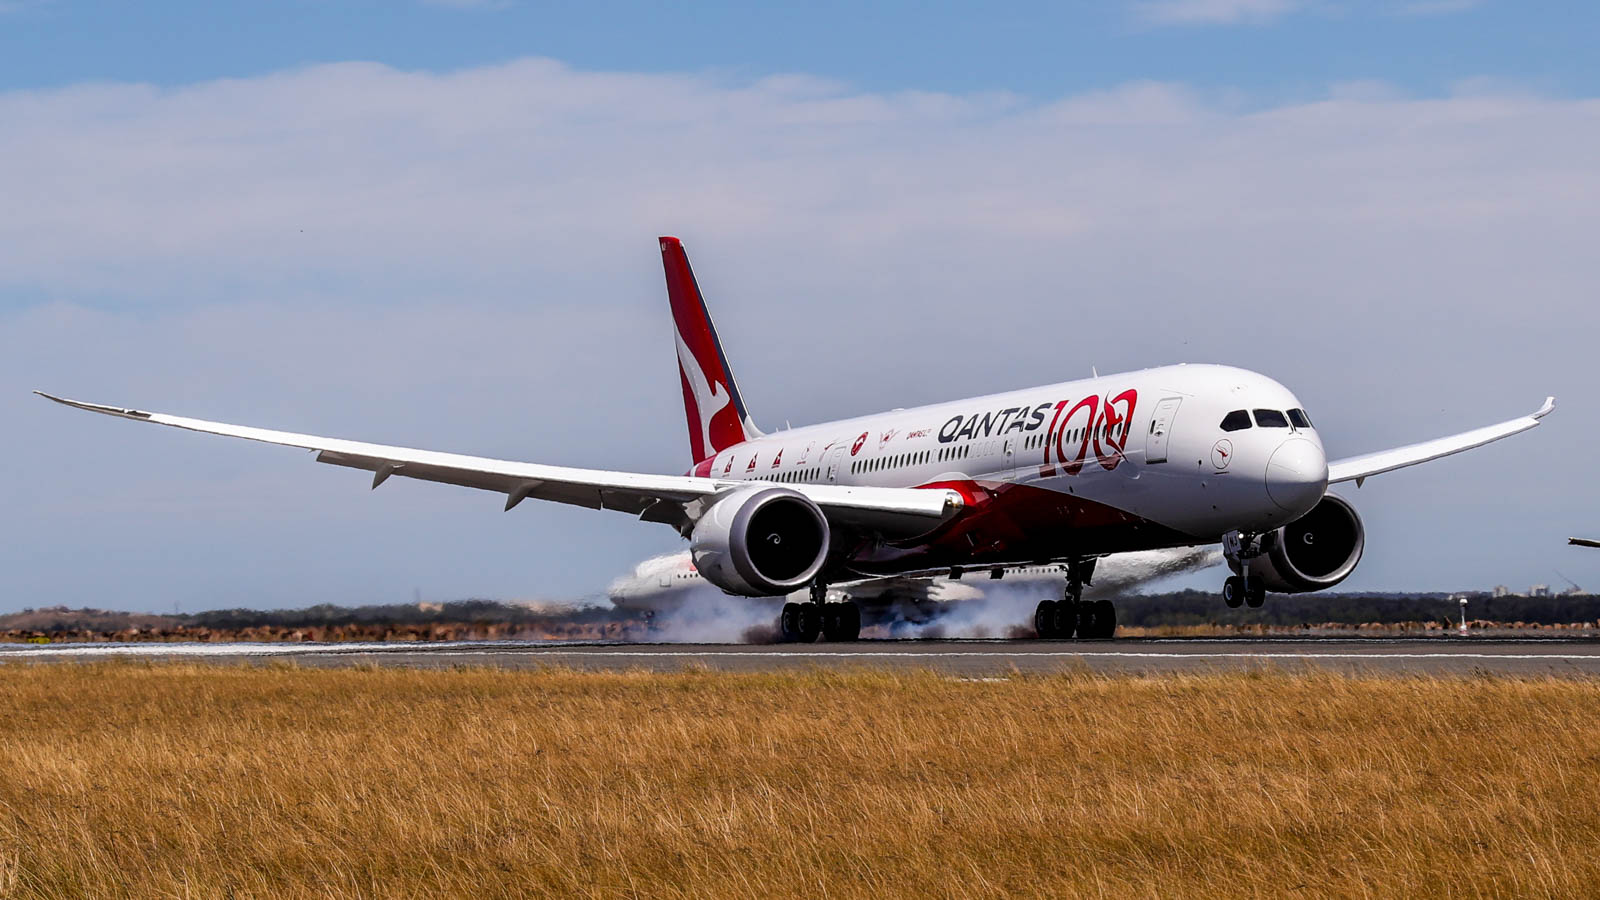 Qantas nonstop flight from London to Sydney: What we learned ...